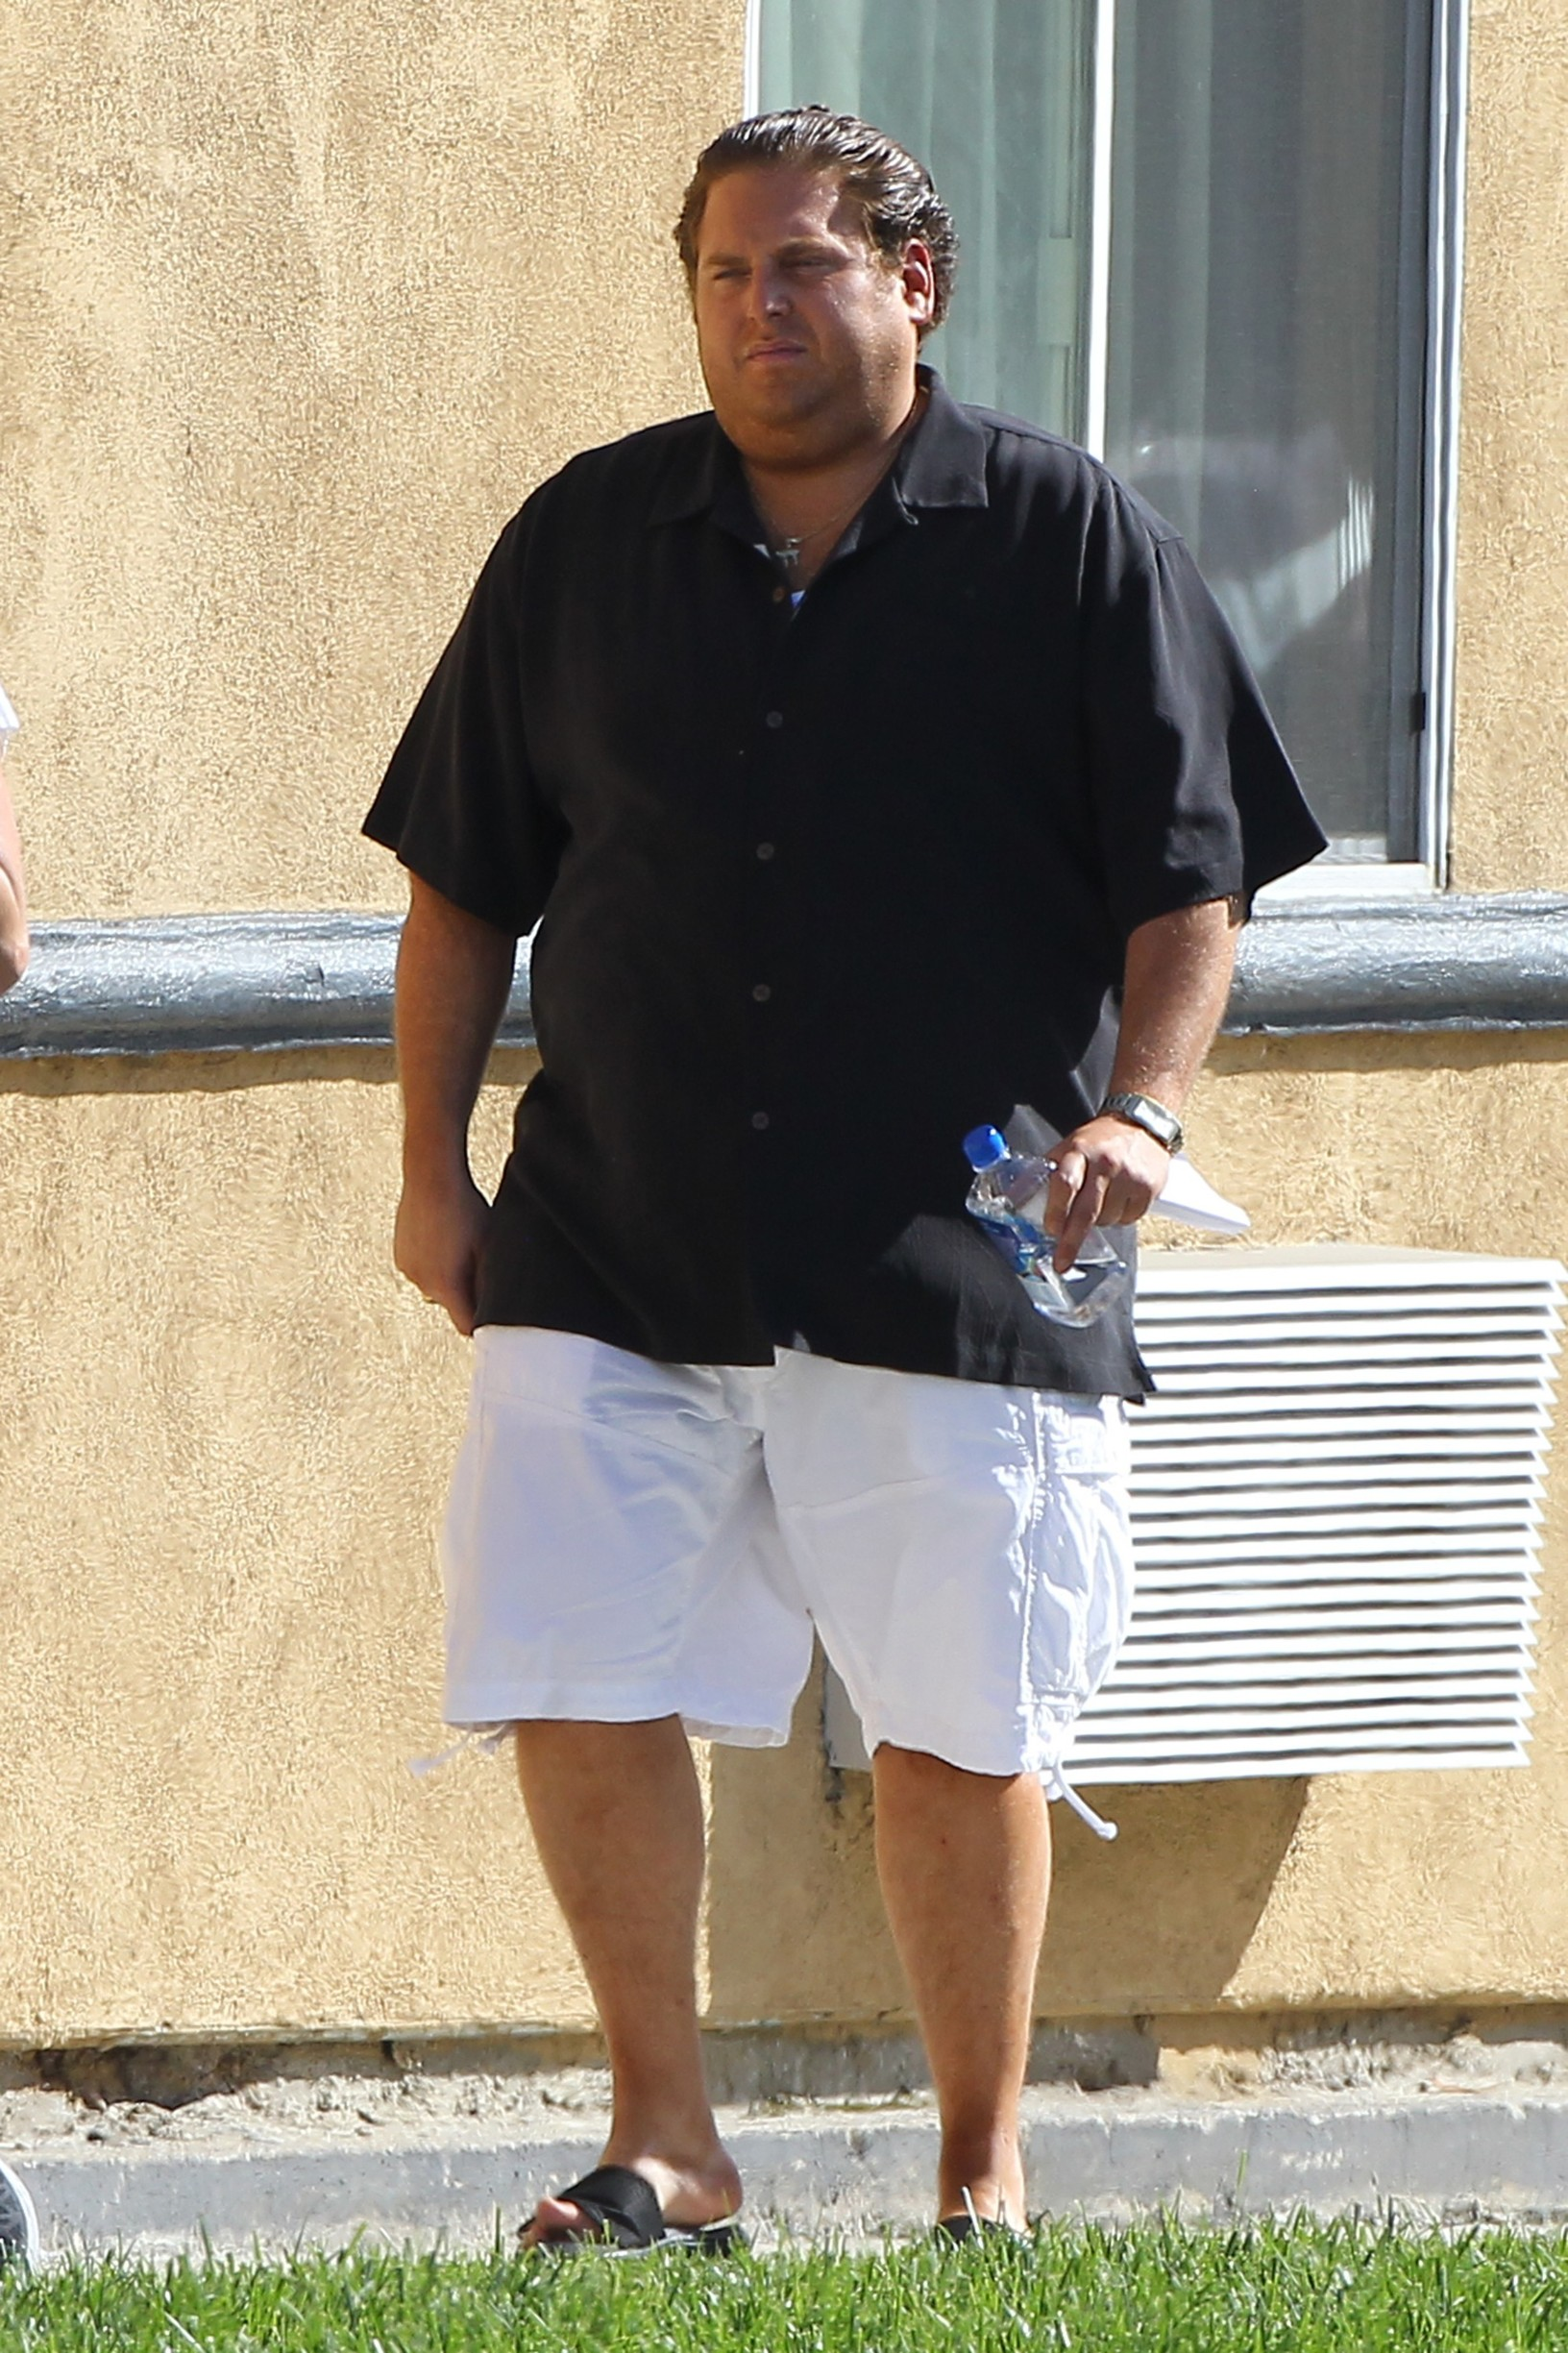 136422, Jonah Hill seen filming scenes for his upcoming movie 'Arms and the Dudes' in Burbank. Burbank, California - Wednesday April 29, 2015., Image: 240526366, License: Rights-managed, Restrictions: , Model Release: no, Credit line: Sam Sharma, PacificCoastNews / Pacific coast news / Profimedia